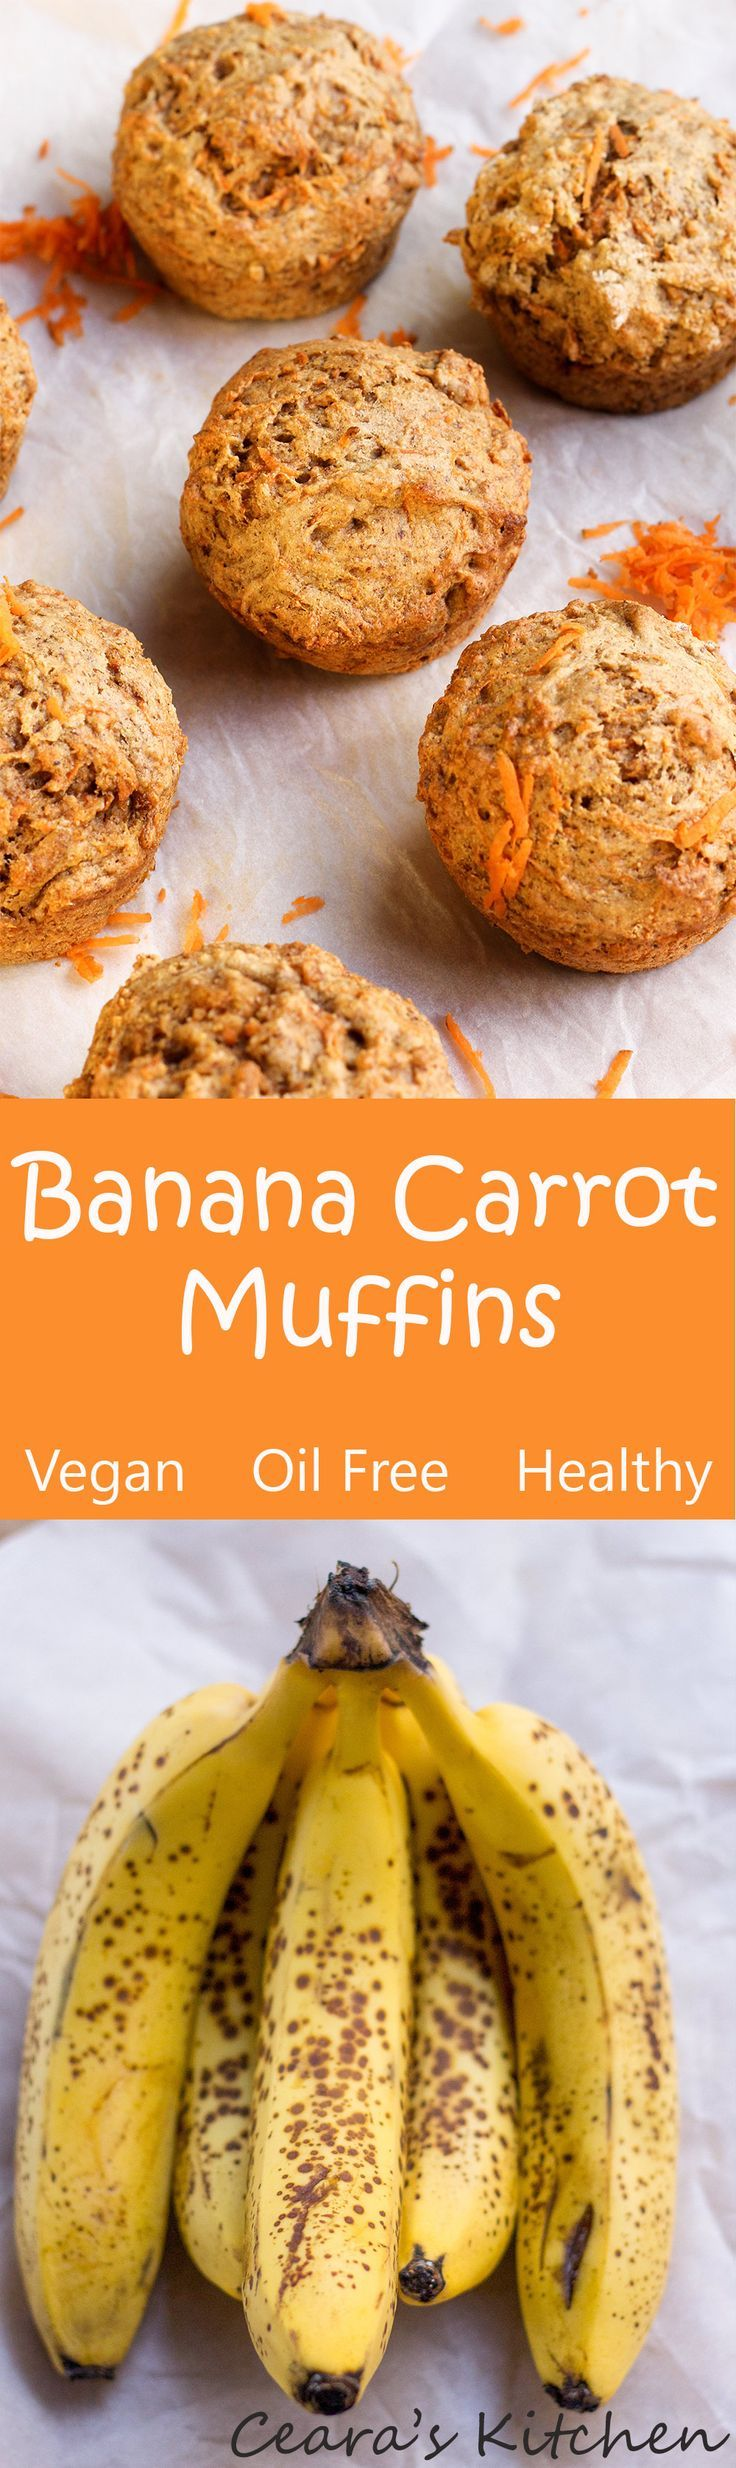 Healthy Banana Carrot Muffins are soo incredibly moist, soft and filled with banana flavor! The perfect vegan snack! Naturally sweetened + oil free - change flour for low fodmap,